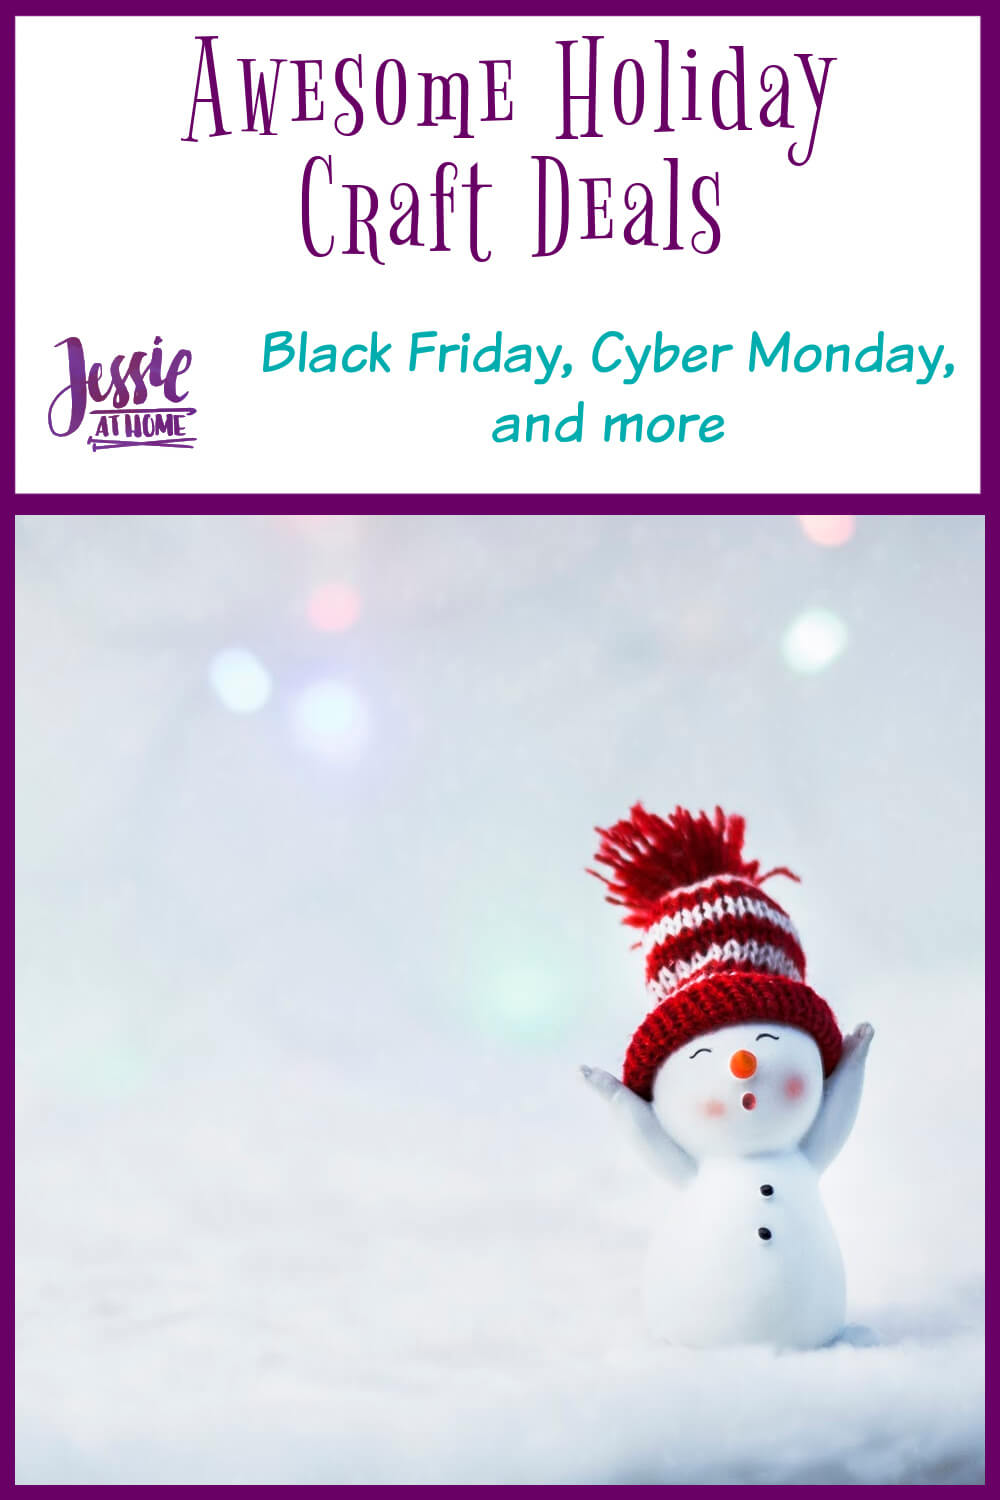 Awesome Holiday Craft Deals compiled by Jessie At Home - Pin 1